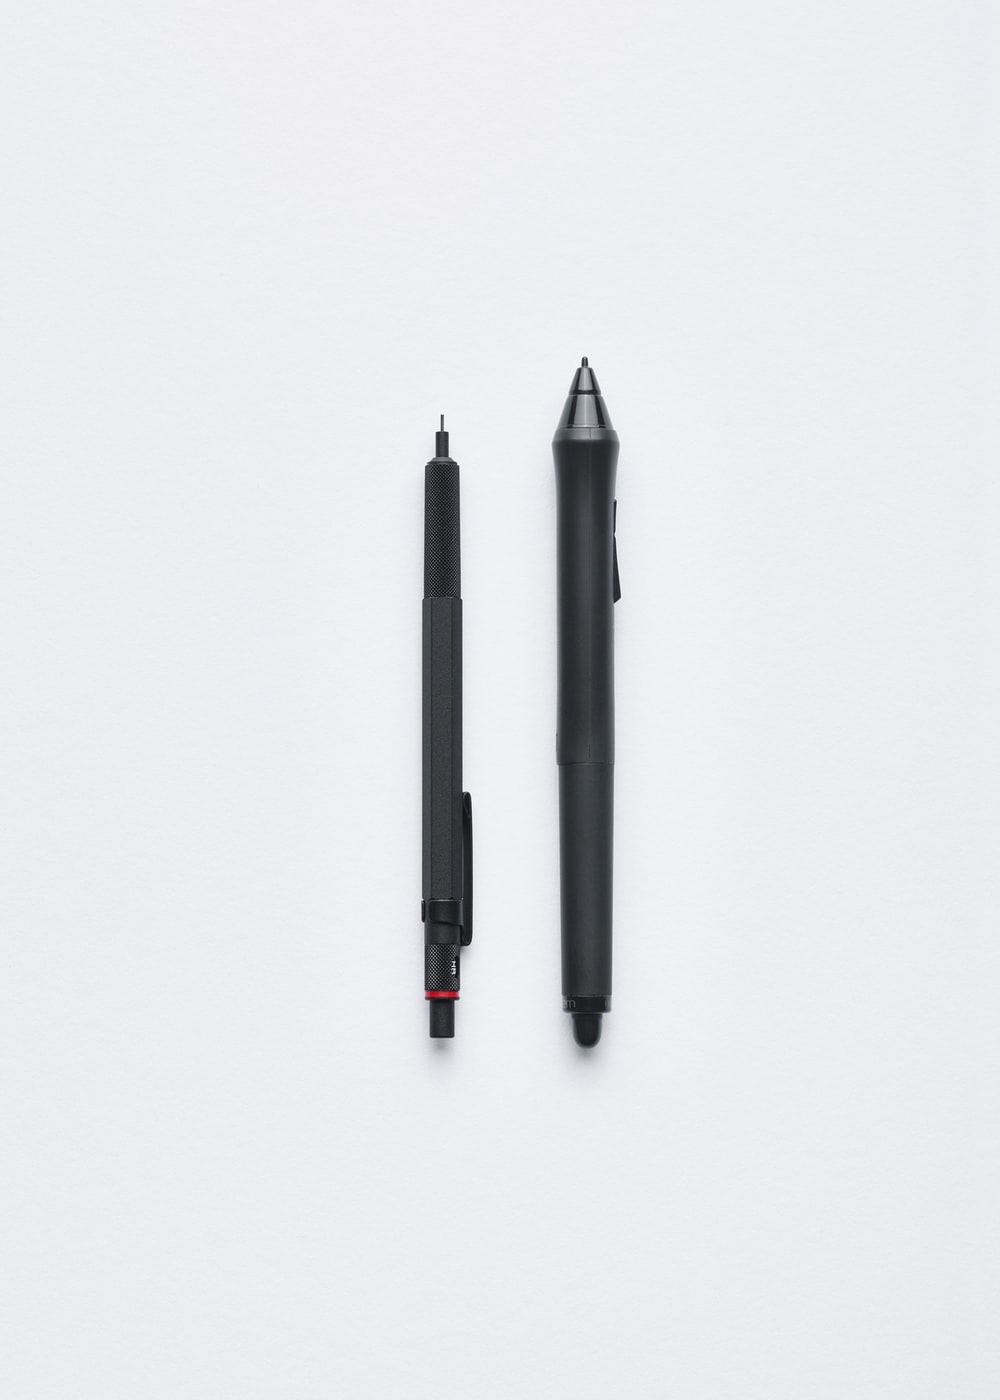 A mechanical pencil and a pen.